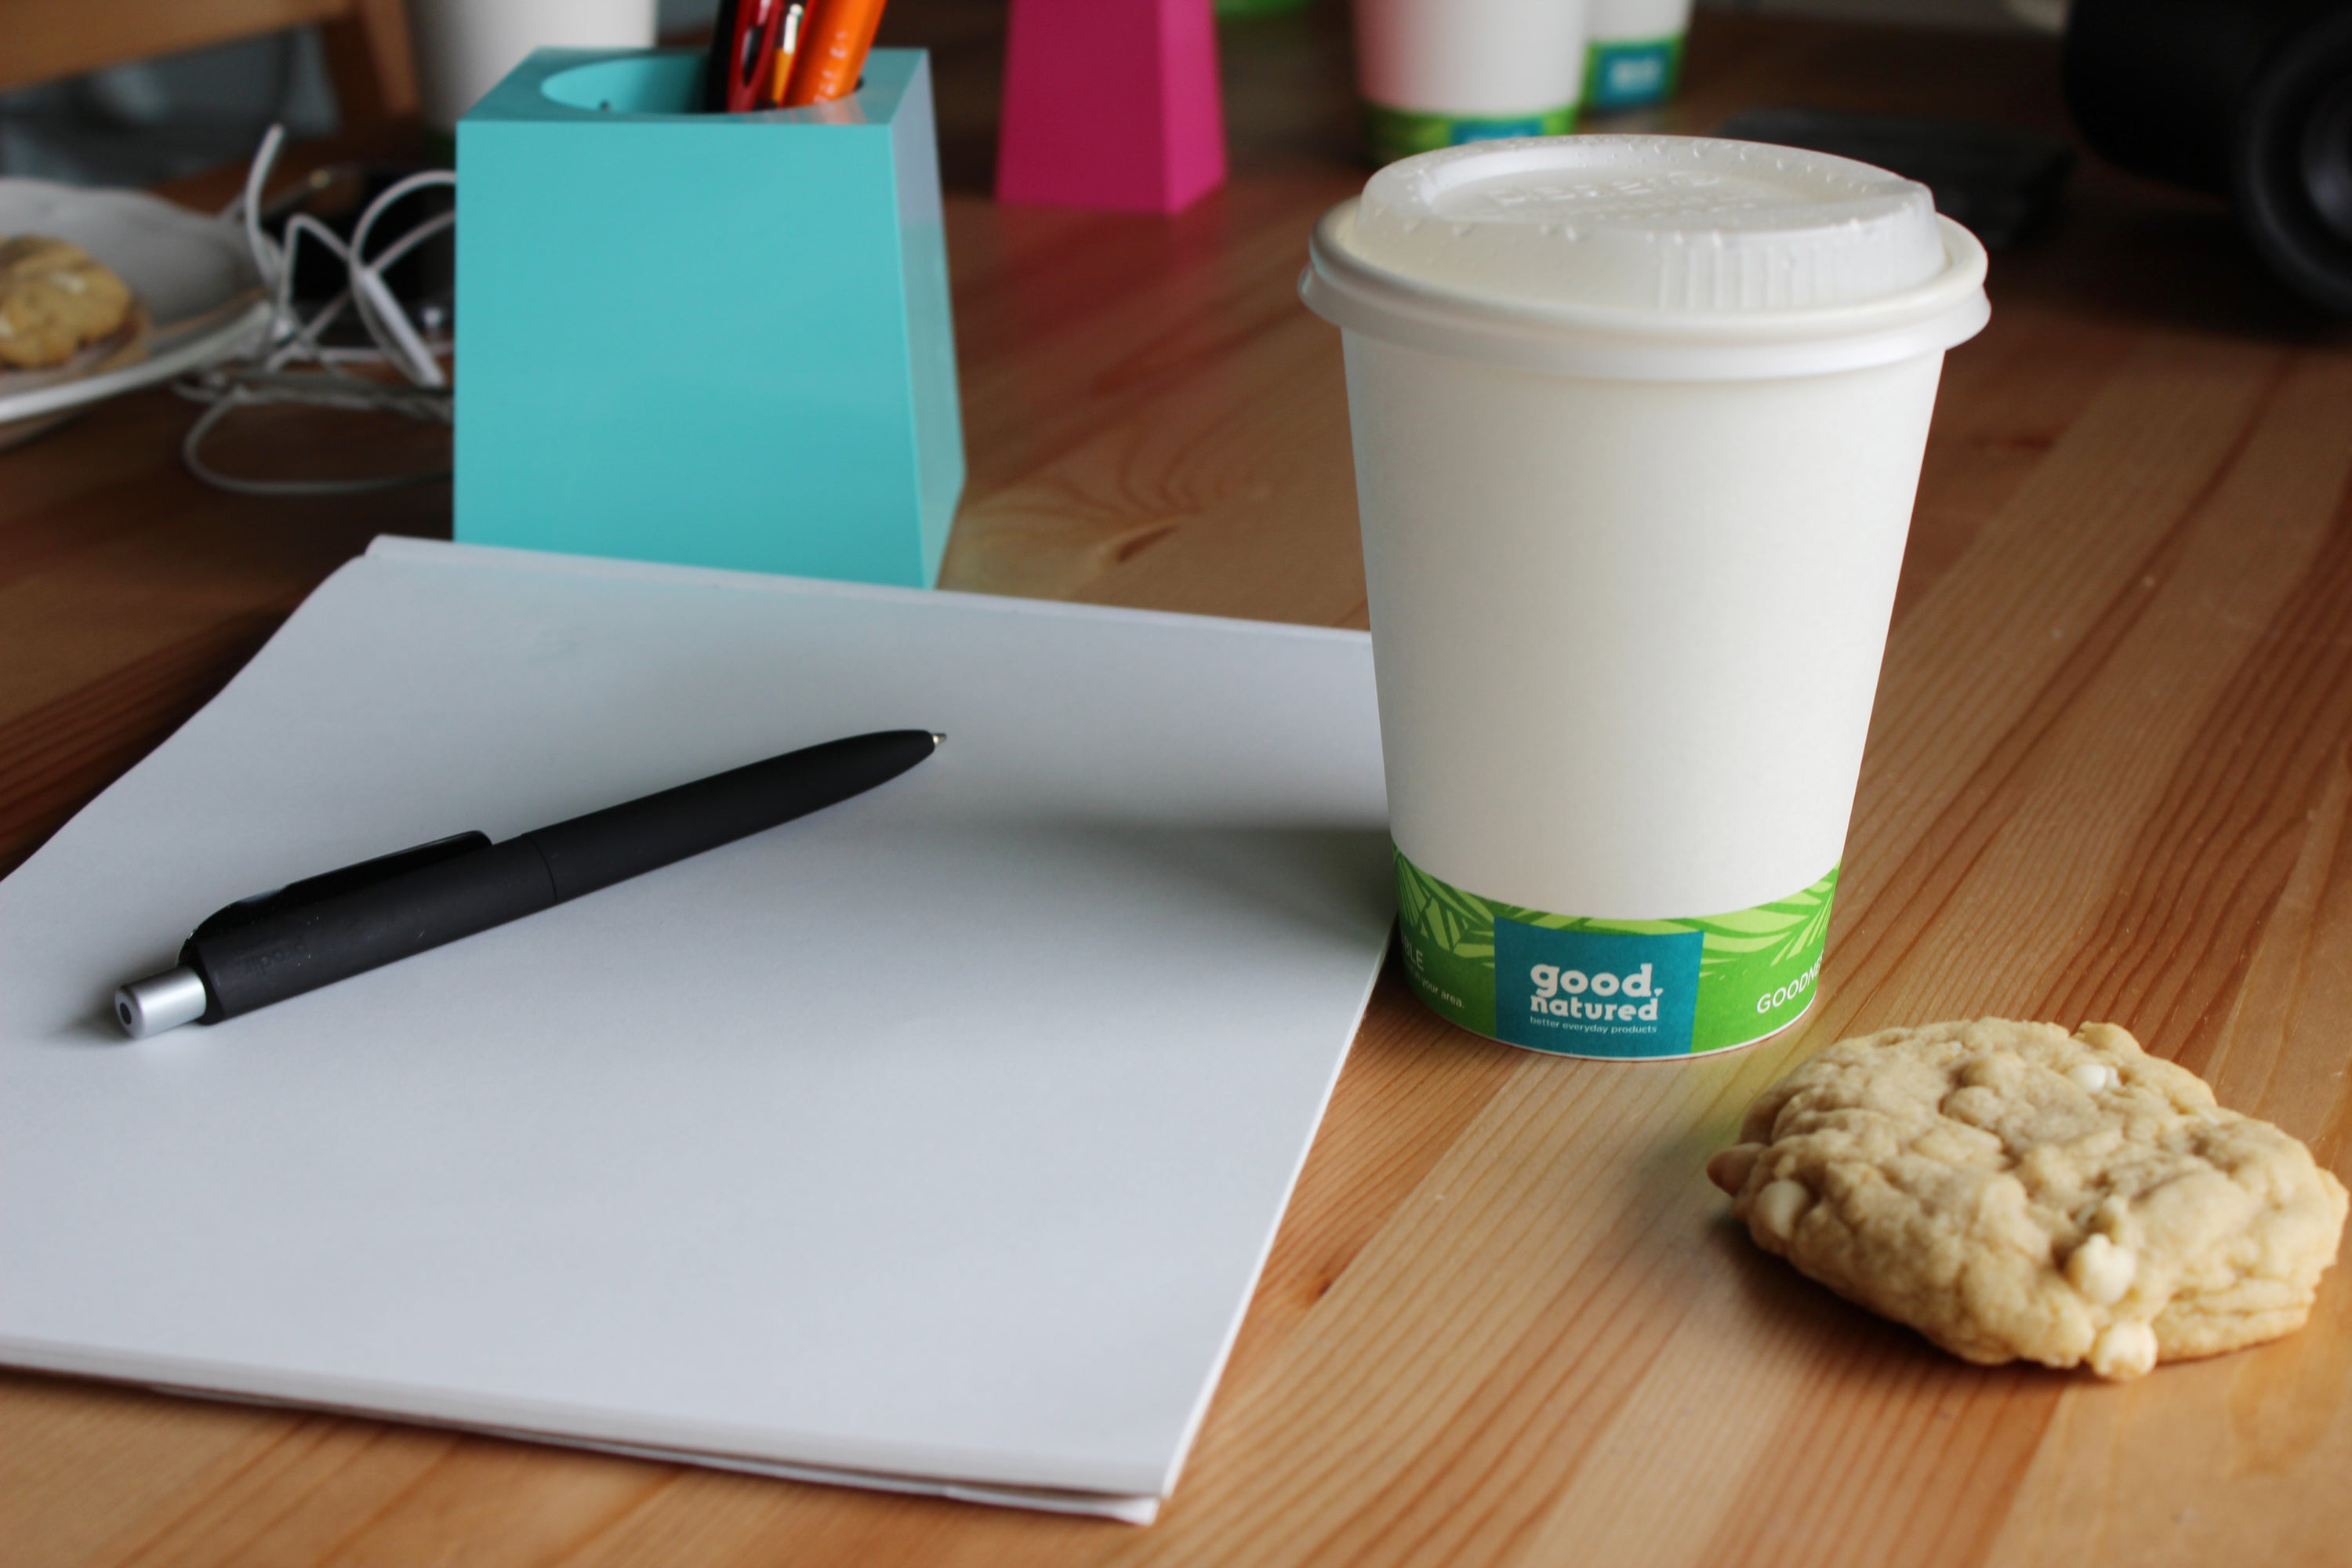 bio cup canada, compostable cups with lids, hot cup and cookie, pen and pad of paper